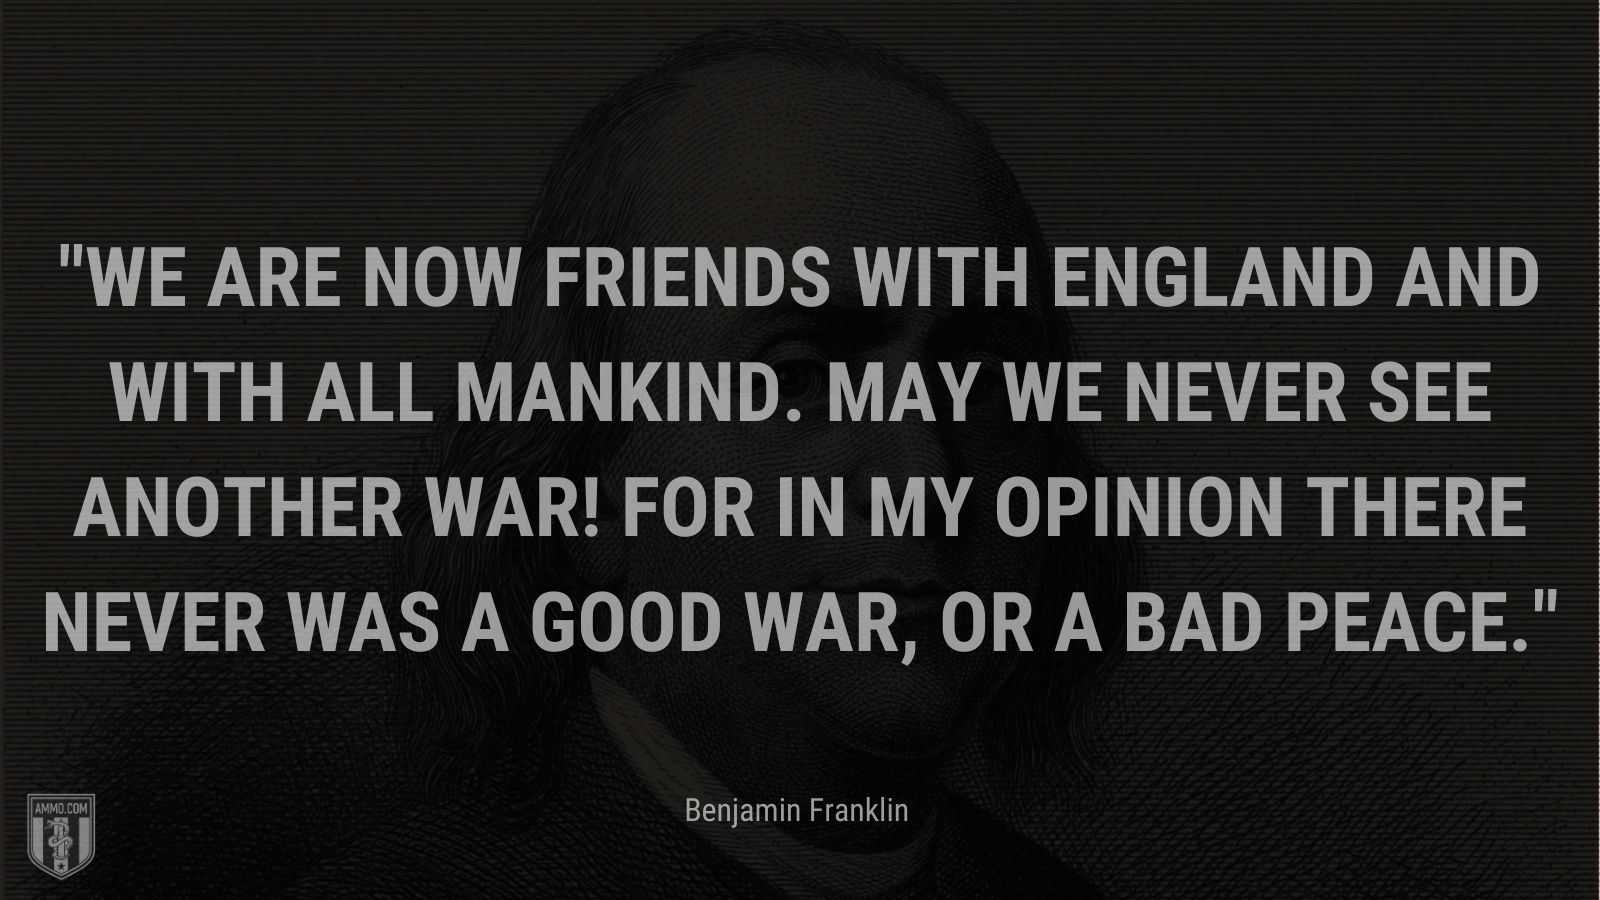 """""""We are now Friends with England and with all Mankind. May we never see another War! for in my Opinion there never was a good War, or a bad Peace."""" - Benjamin Franklin"""